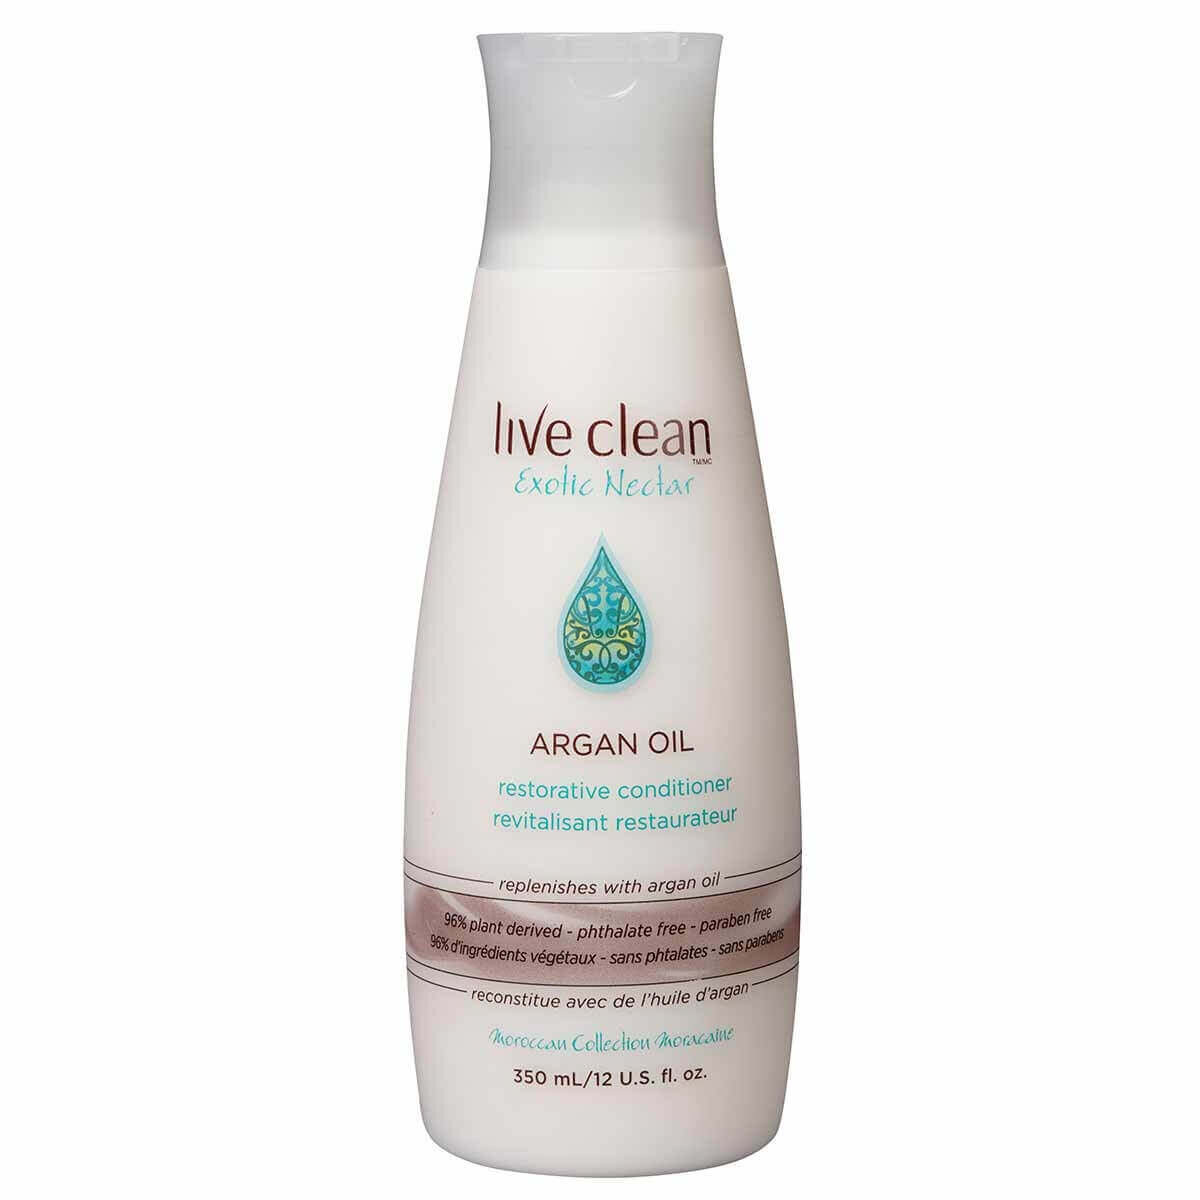 Argan Oil Restorative Saç Kremi 350 ml